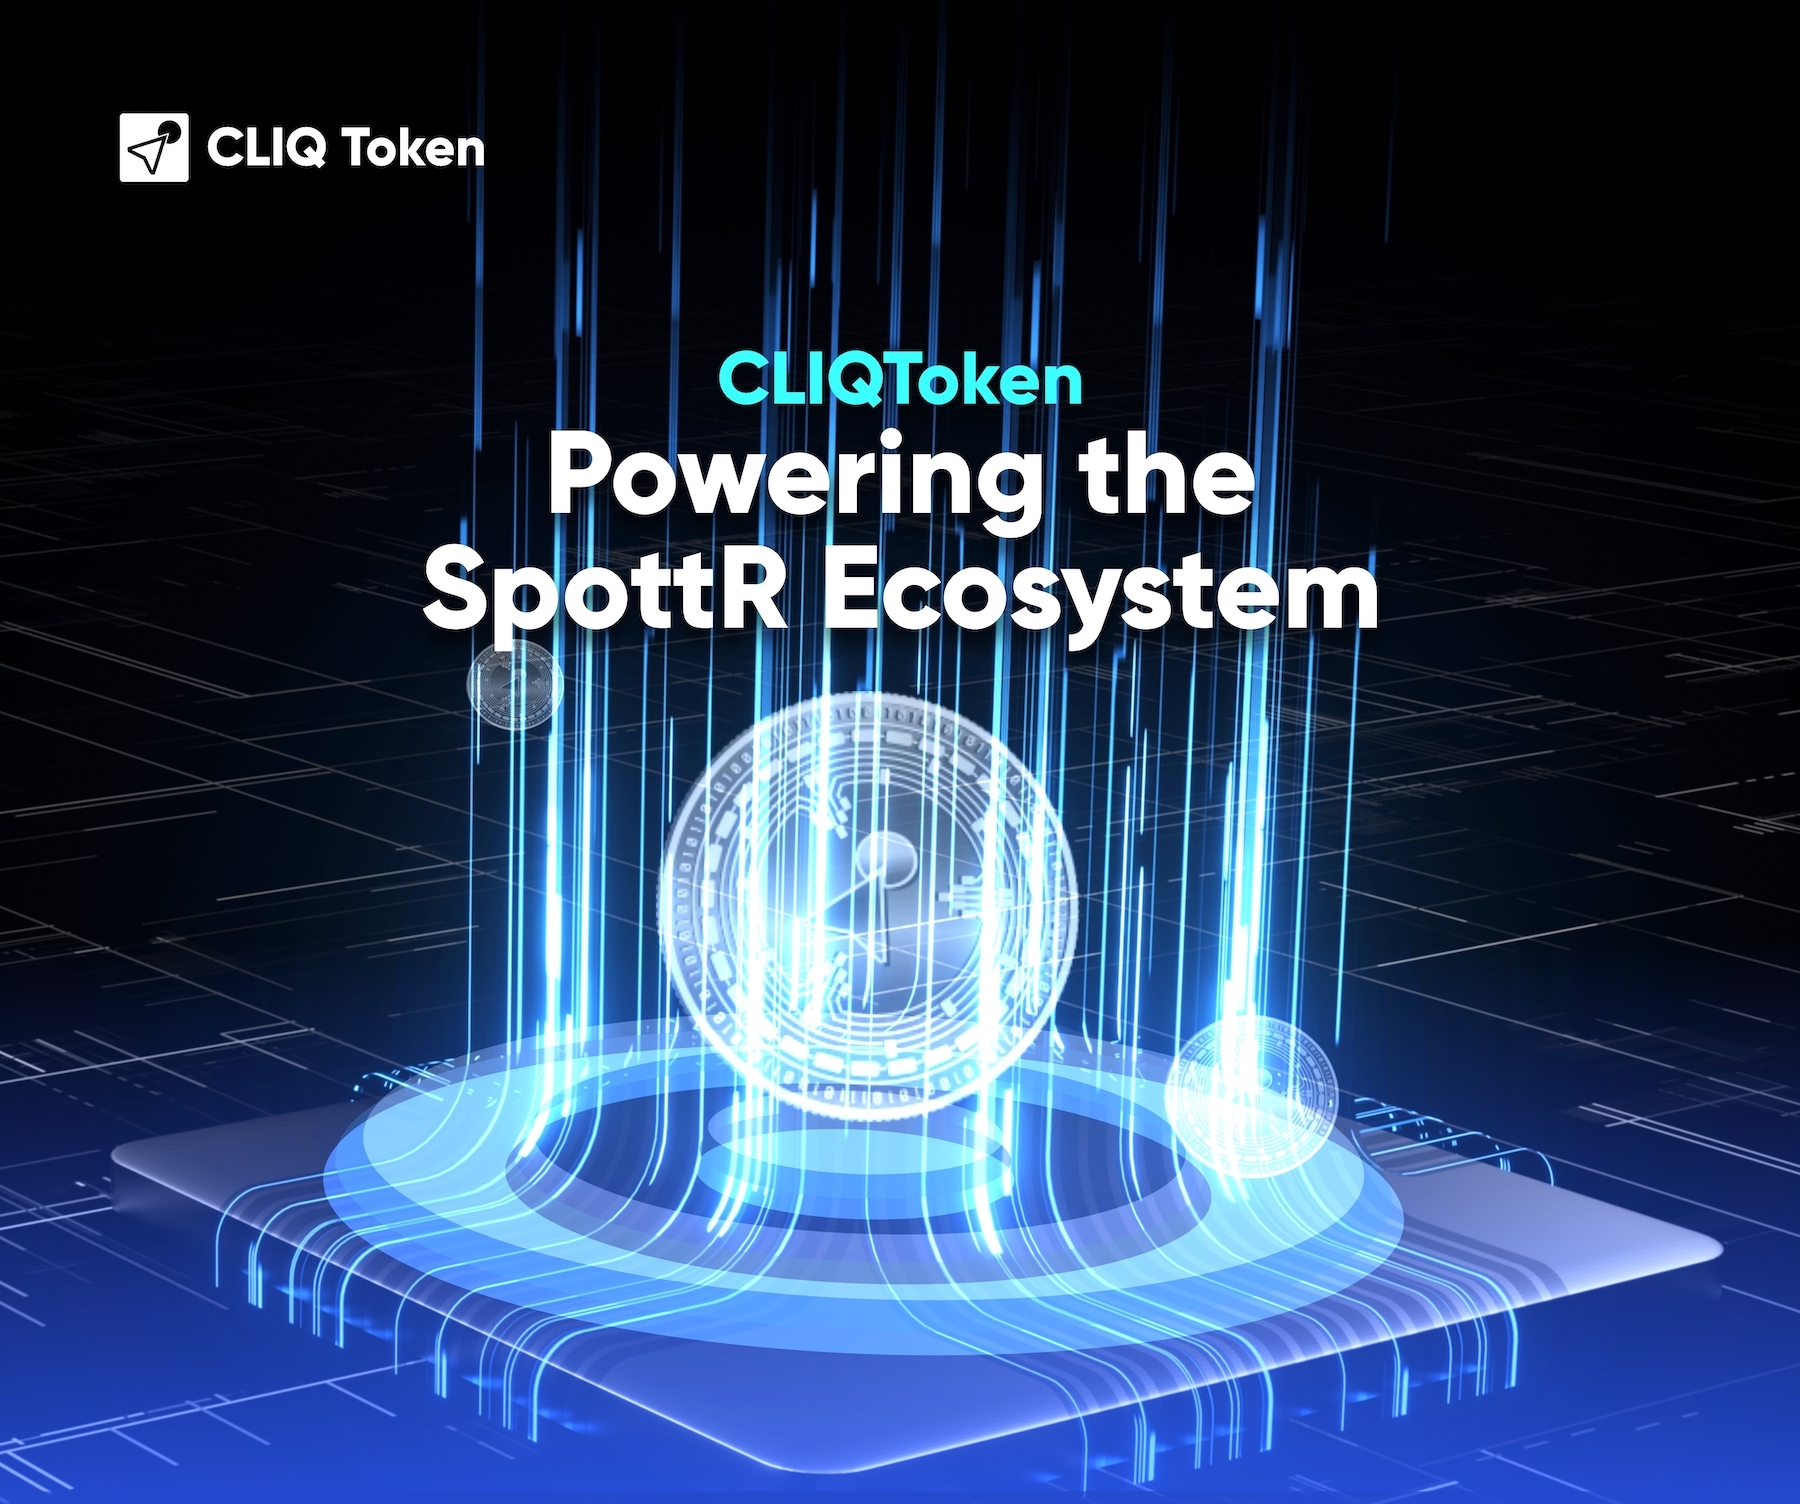 CLIQTOKEN PRESALE (13TH JANUARY, 2020)